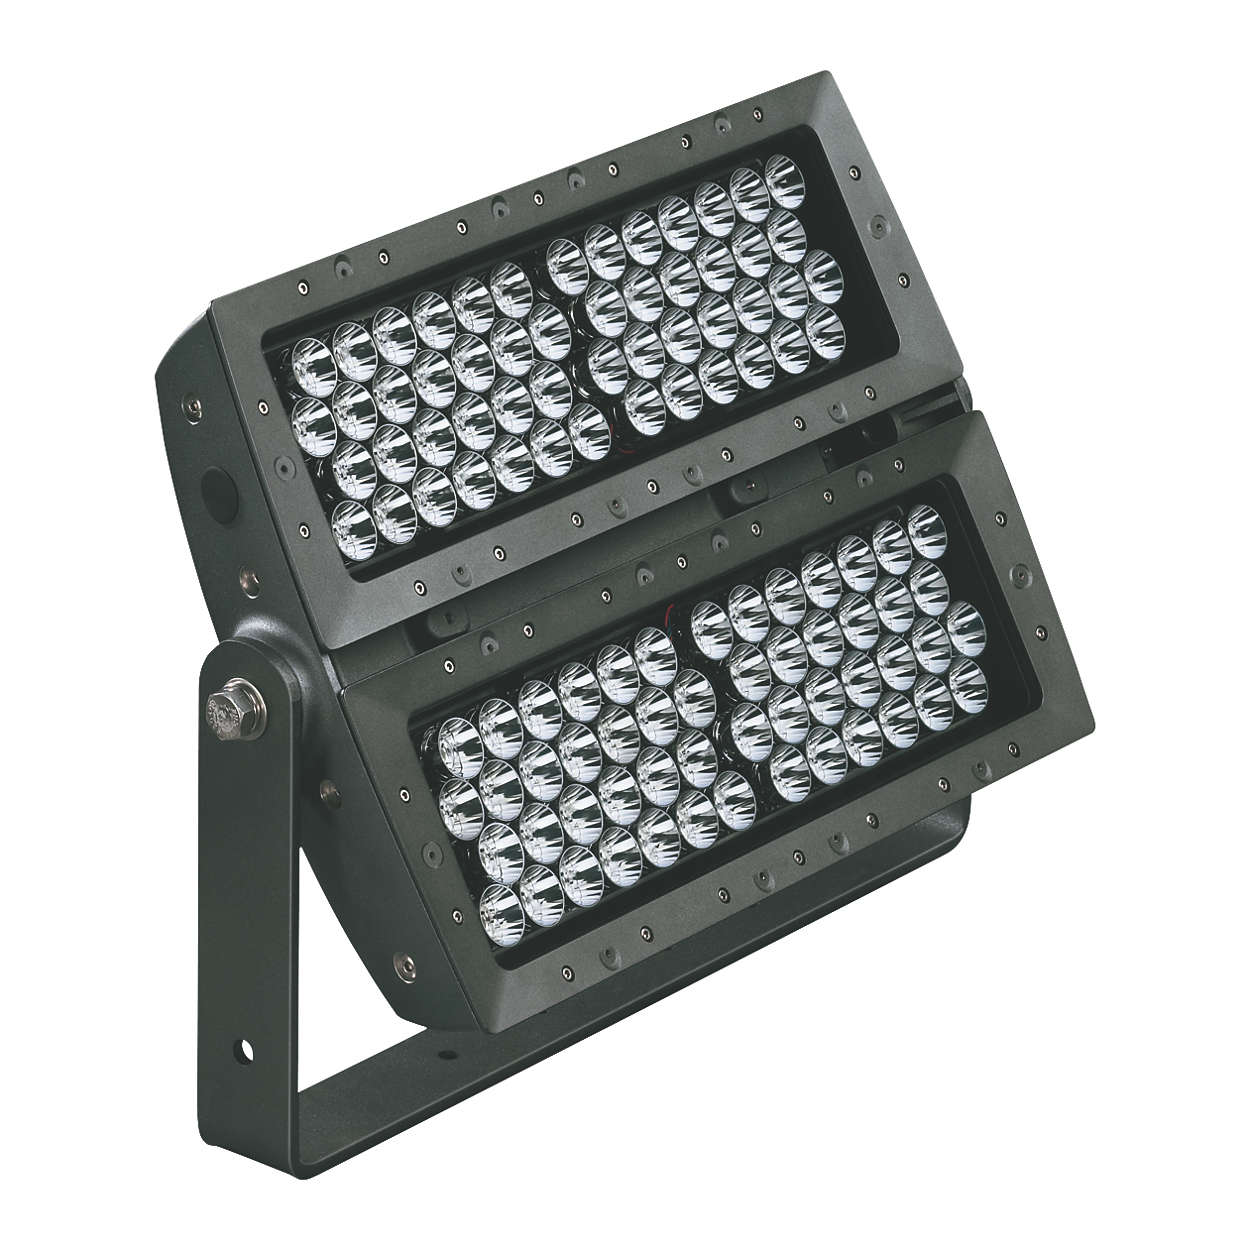 iW Reach Powercore gen2 – luminária LED inteligente luz branca de longo alcance tipo floodlight